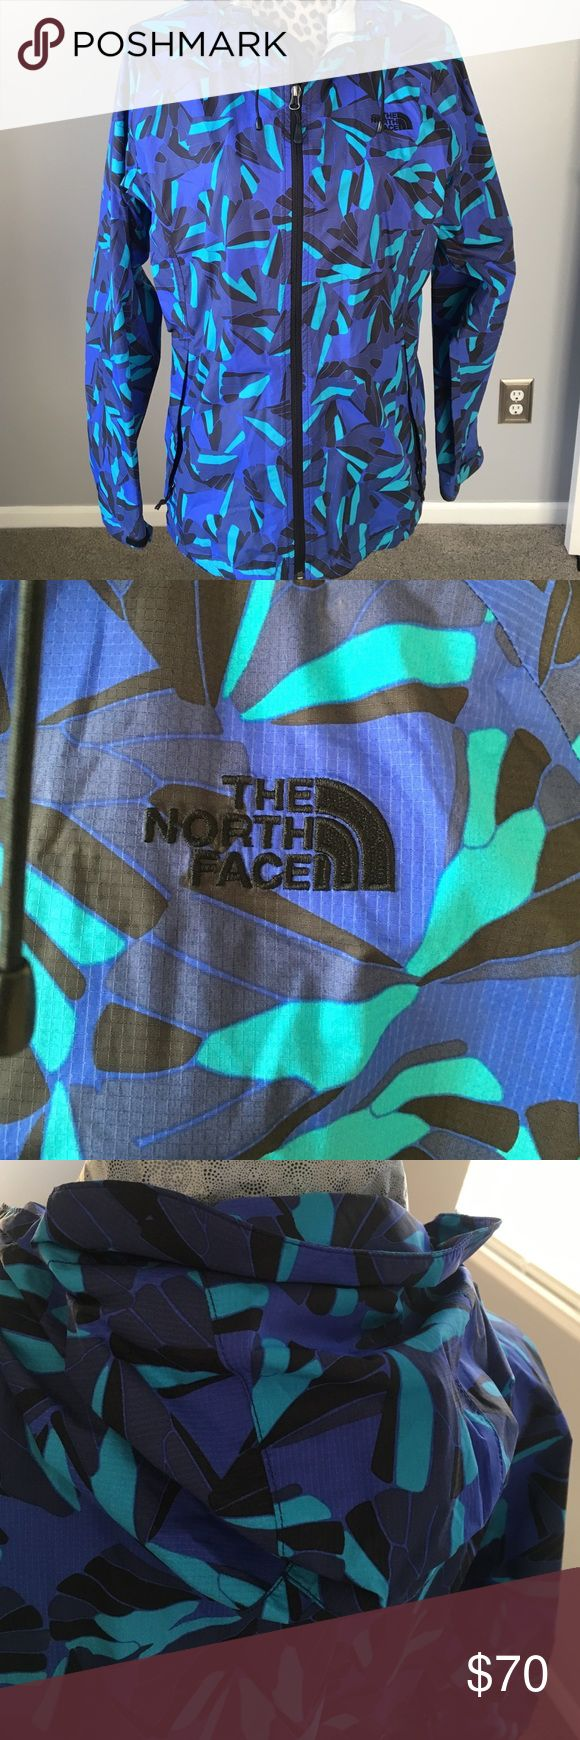 North face wind breaker Multi color Northface windbreaker/rain jacket. Excellent condition. Has hood and 2 zippered side pockets North Face Jackets & Coats